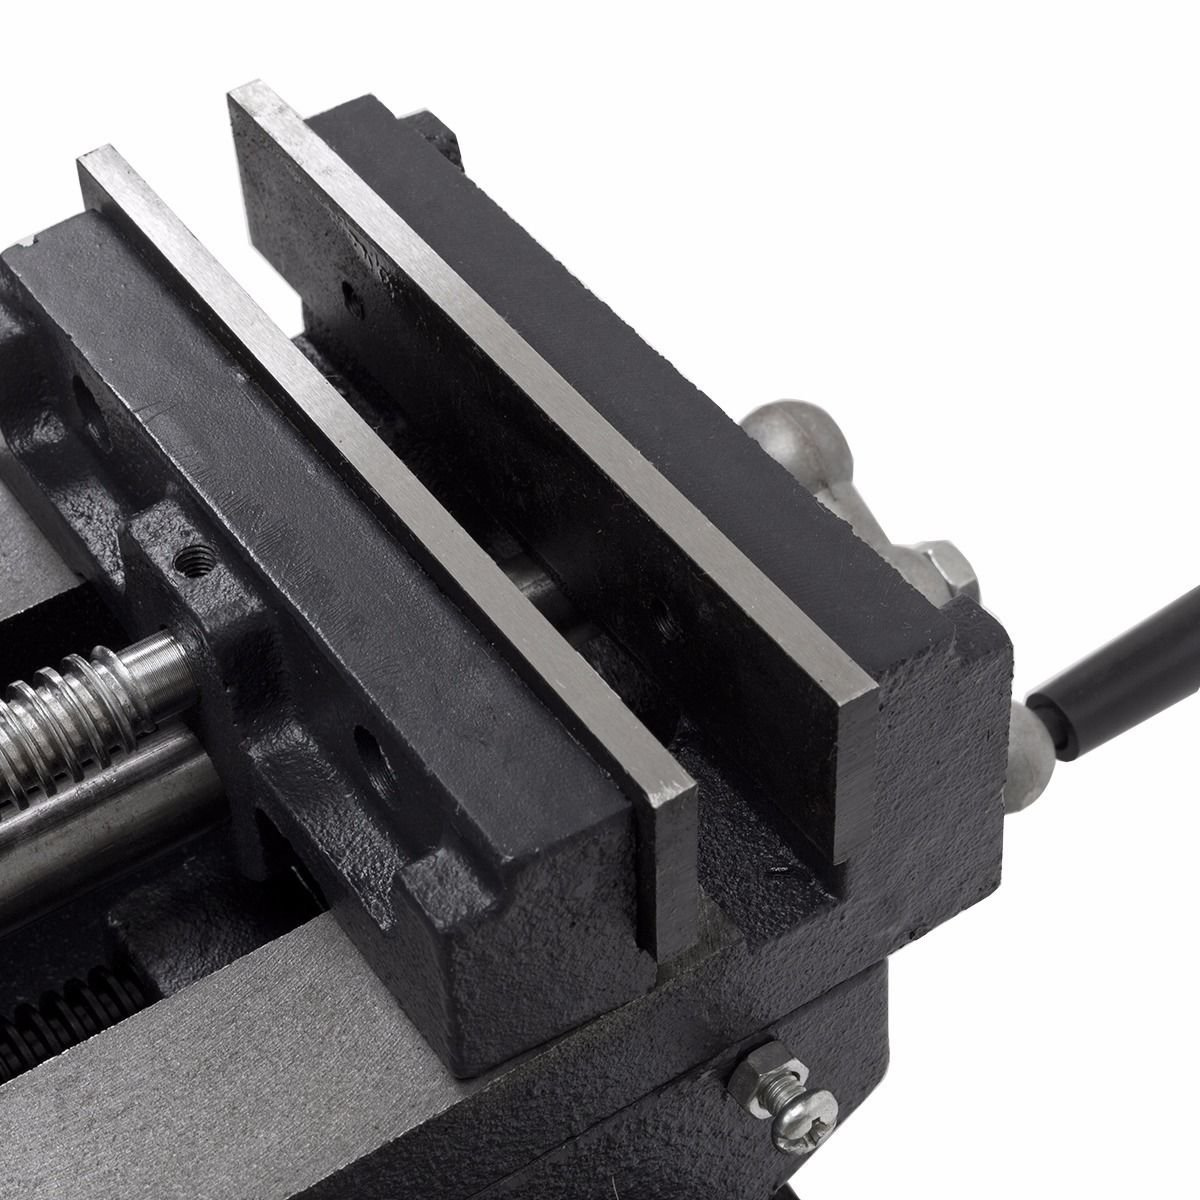 GHP drill press review